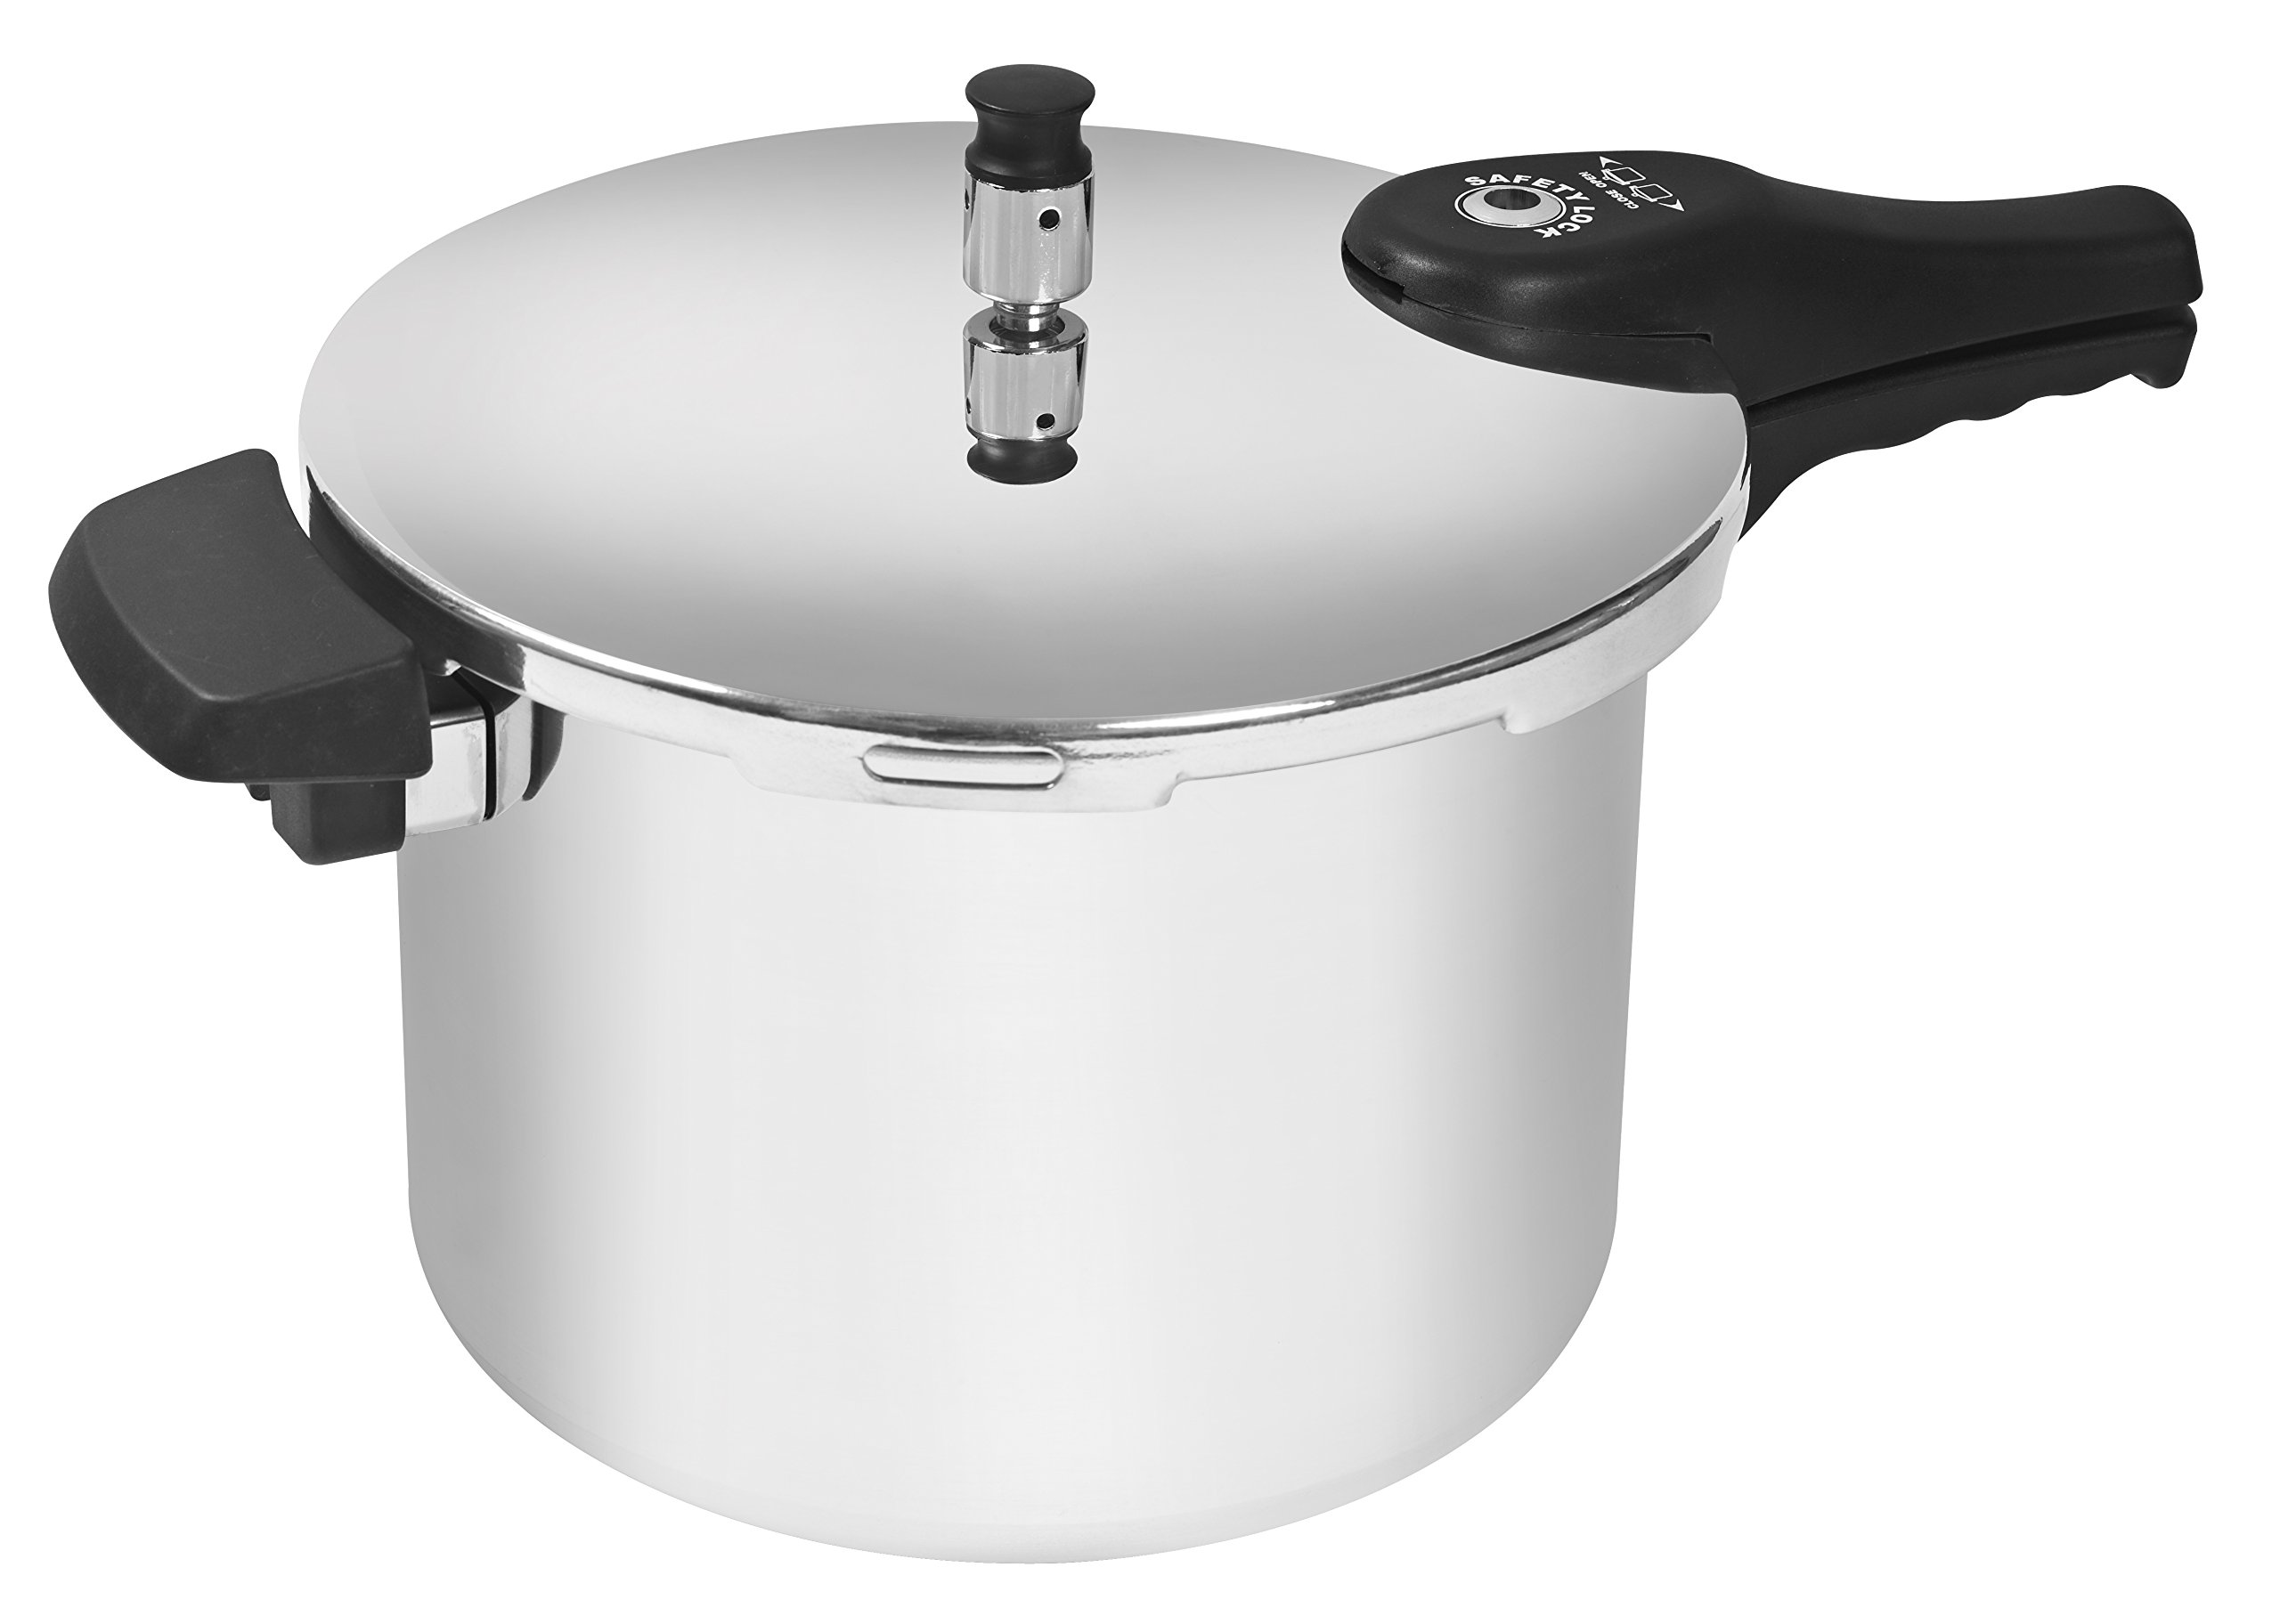 Cook Prep Eat 9 quart Pressure Cooker with Safety Features, Large, Stovetop Pressure Cooker Express, Natural Aluminum, Silver